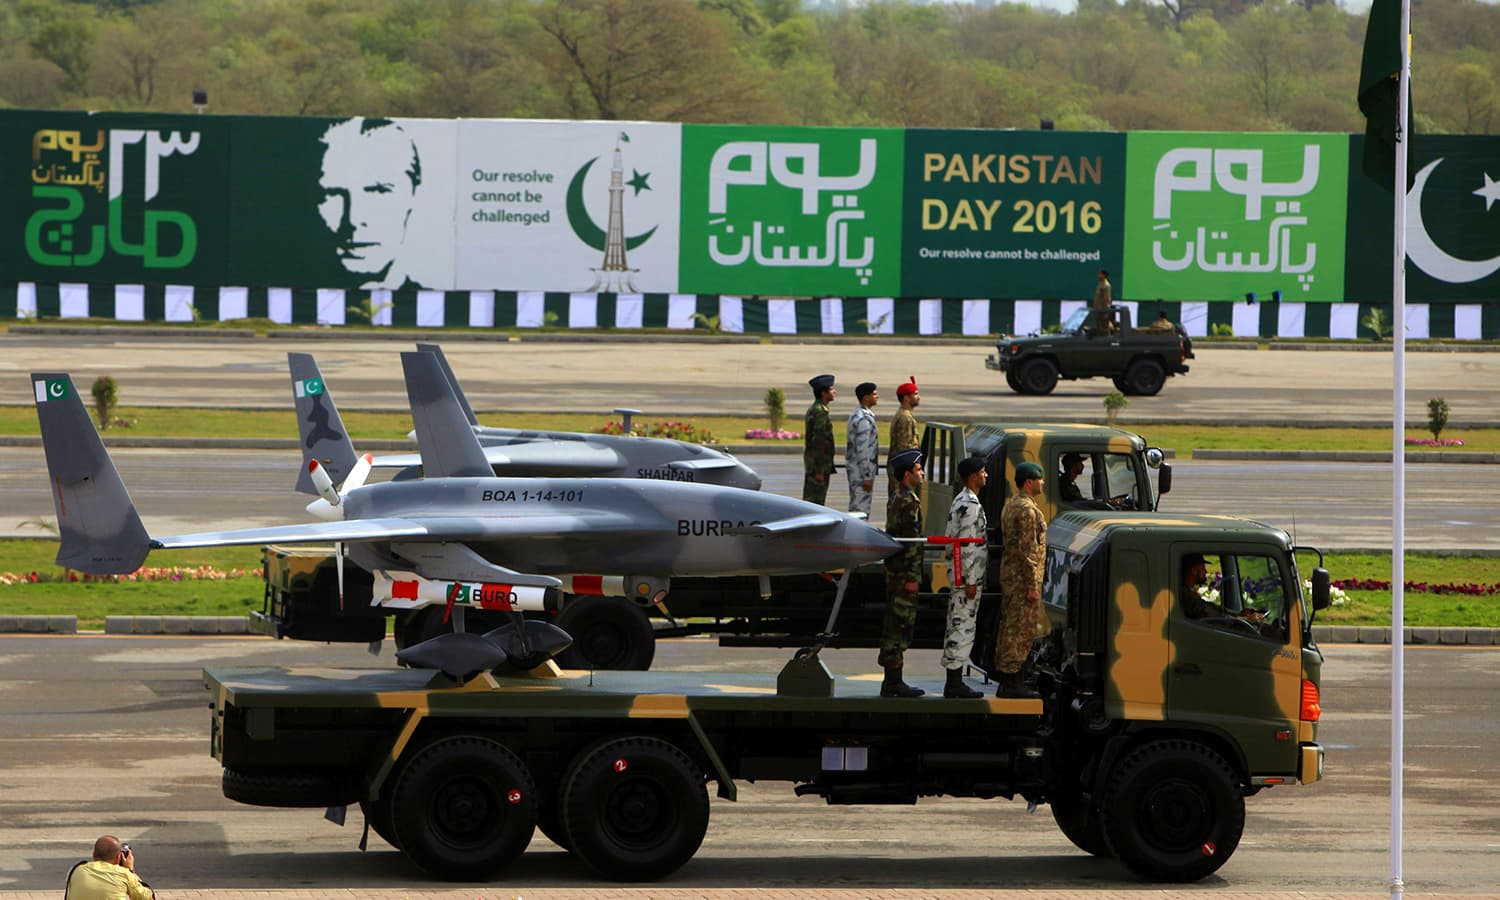 Pakistani-built Burraq unmanned aircraft are displayed during the Pakistan Day military parade. ─ Reuters